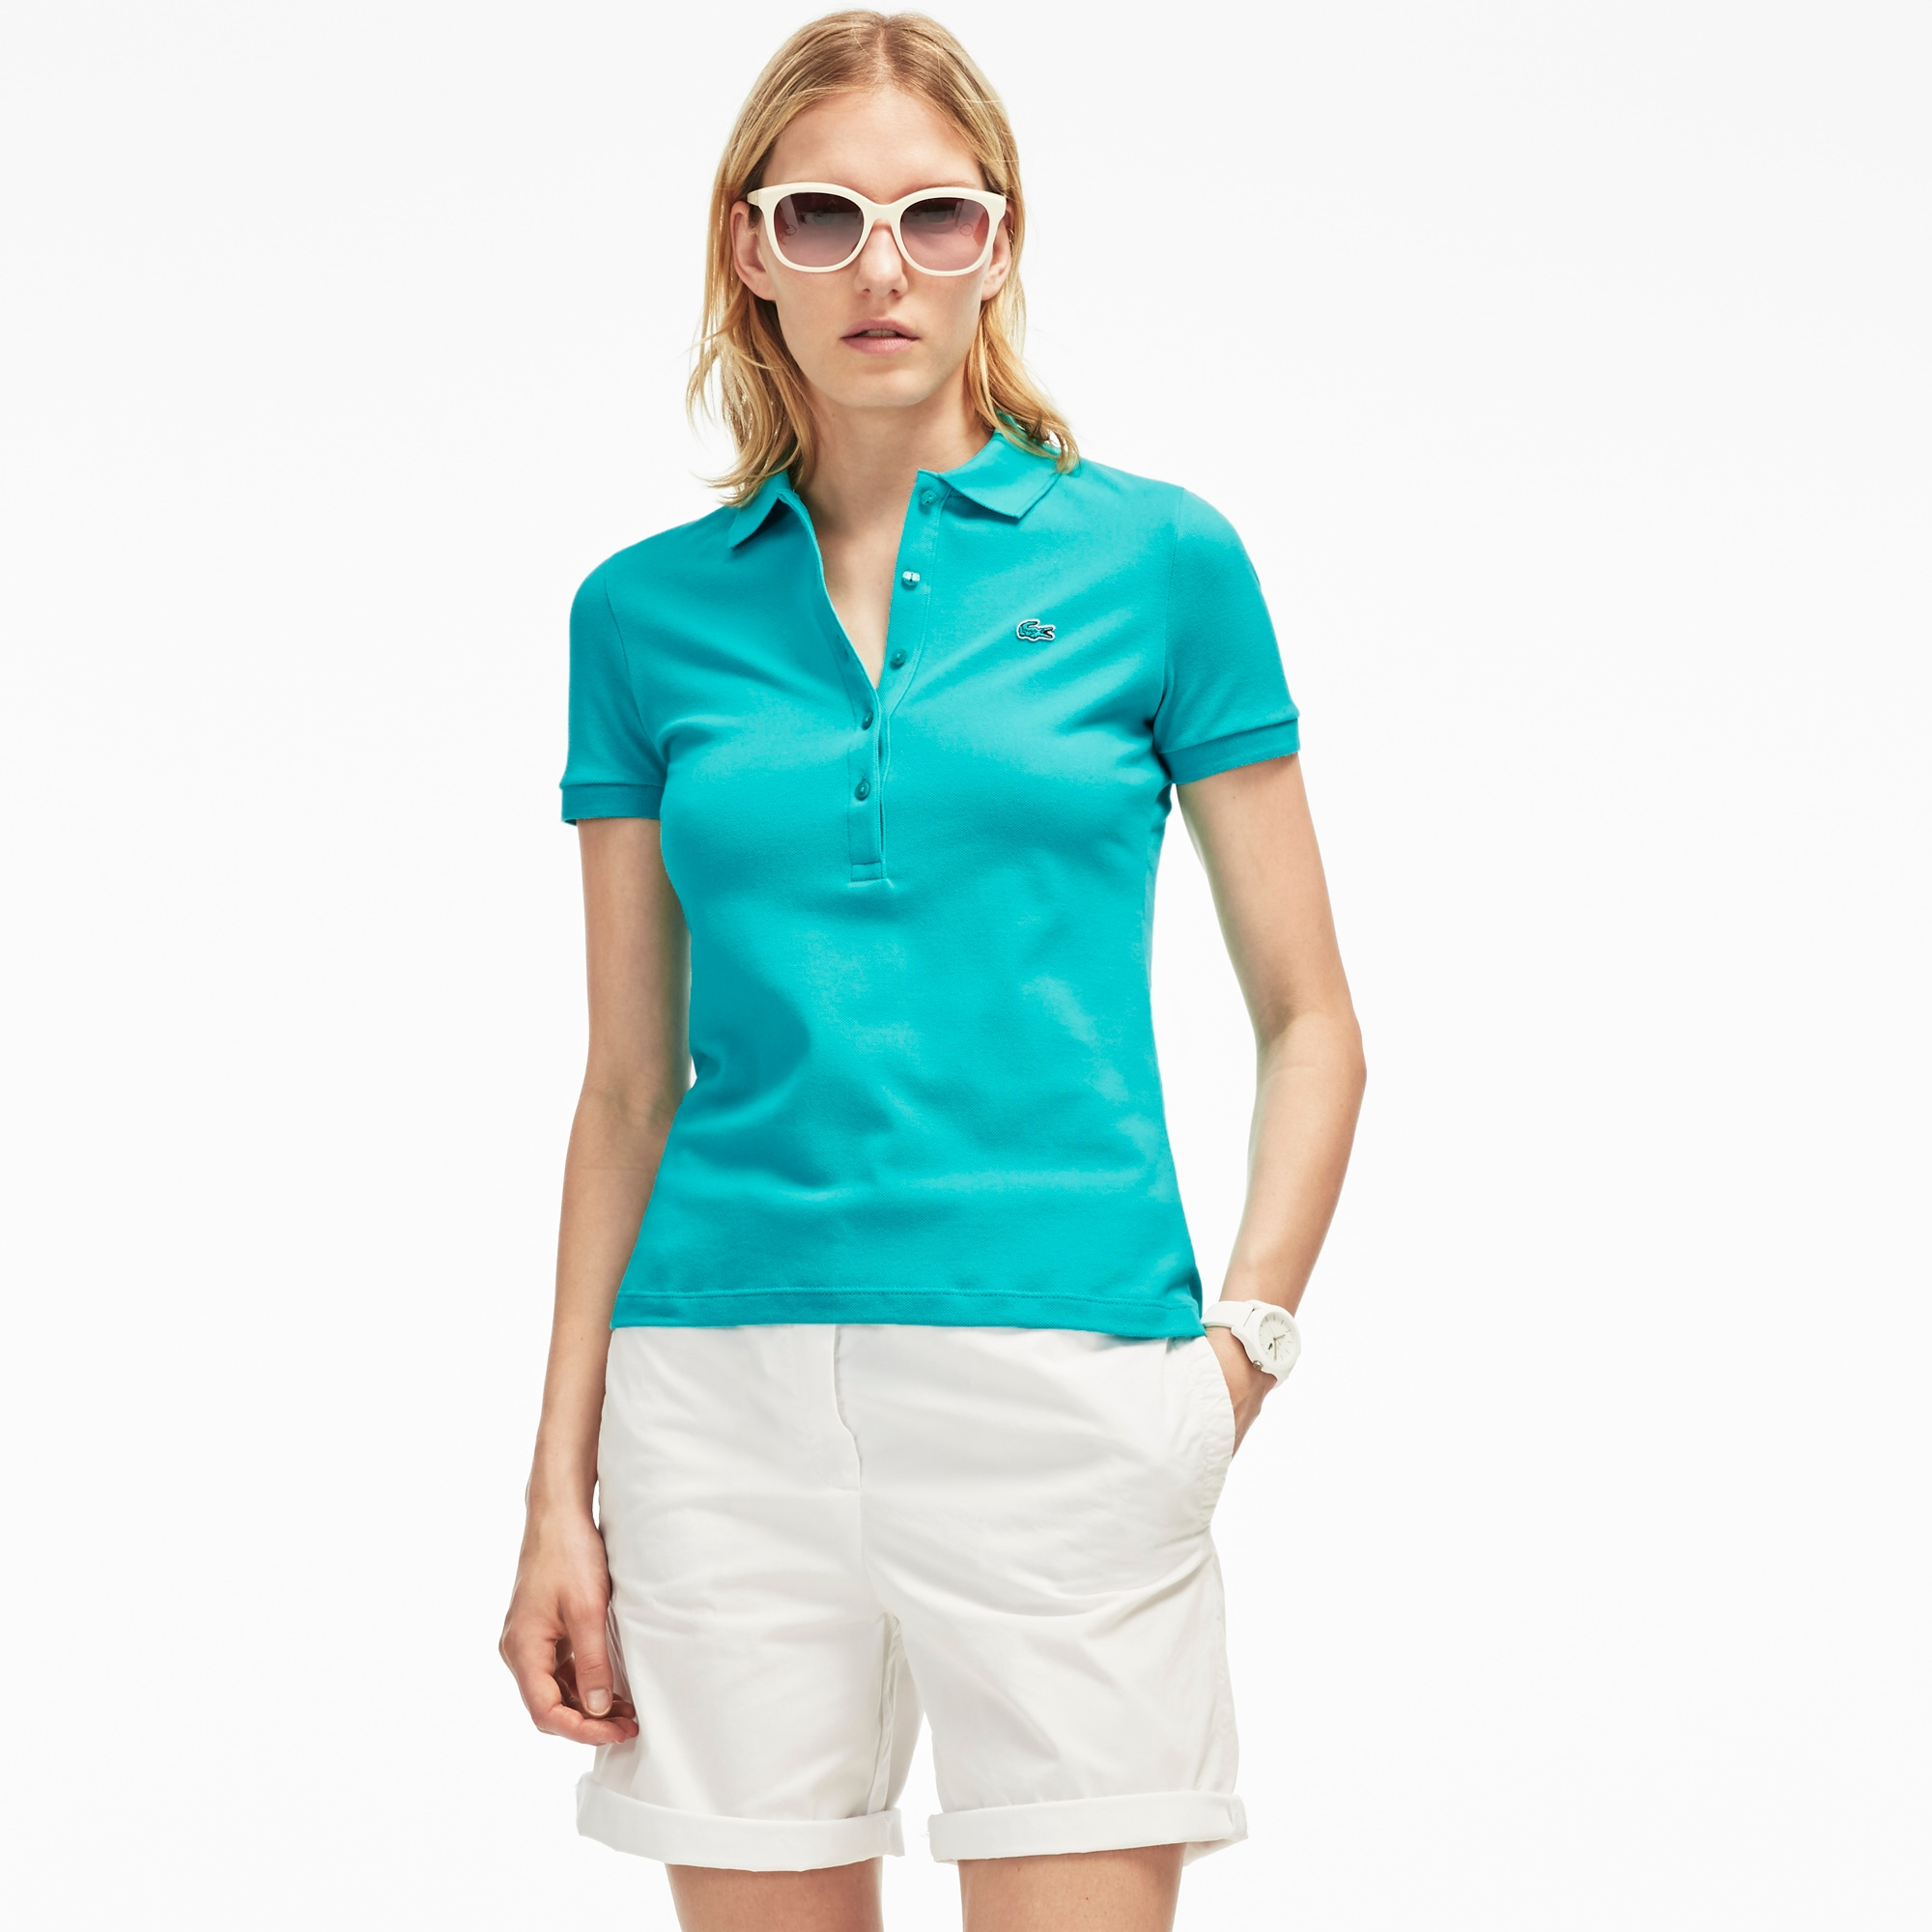 Women's Slim Fit Stretch Piqué Polo Shirt